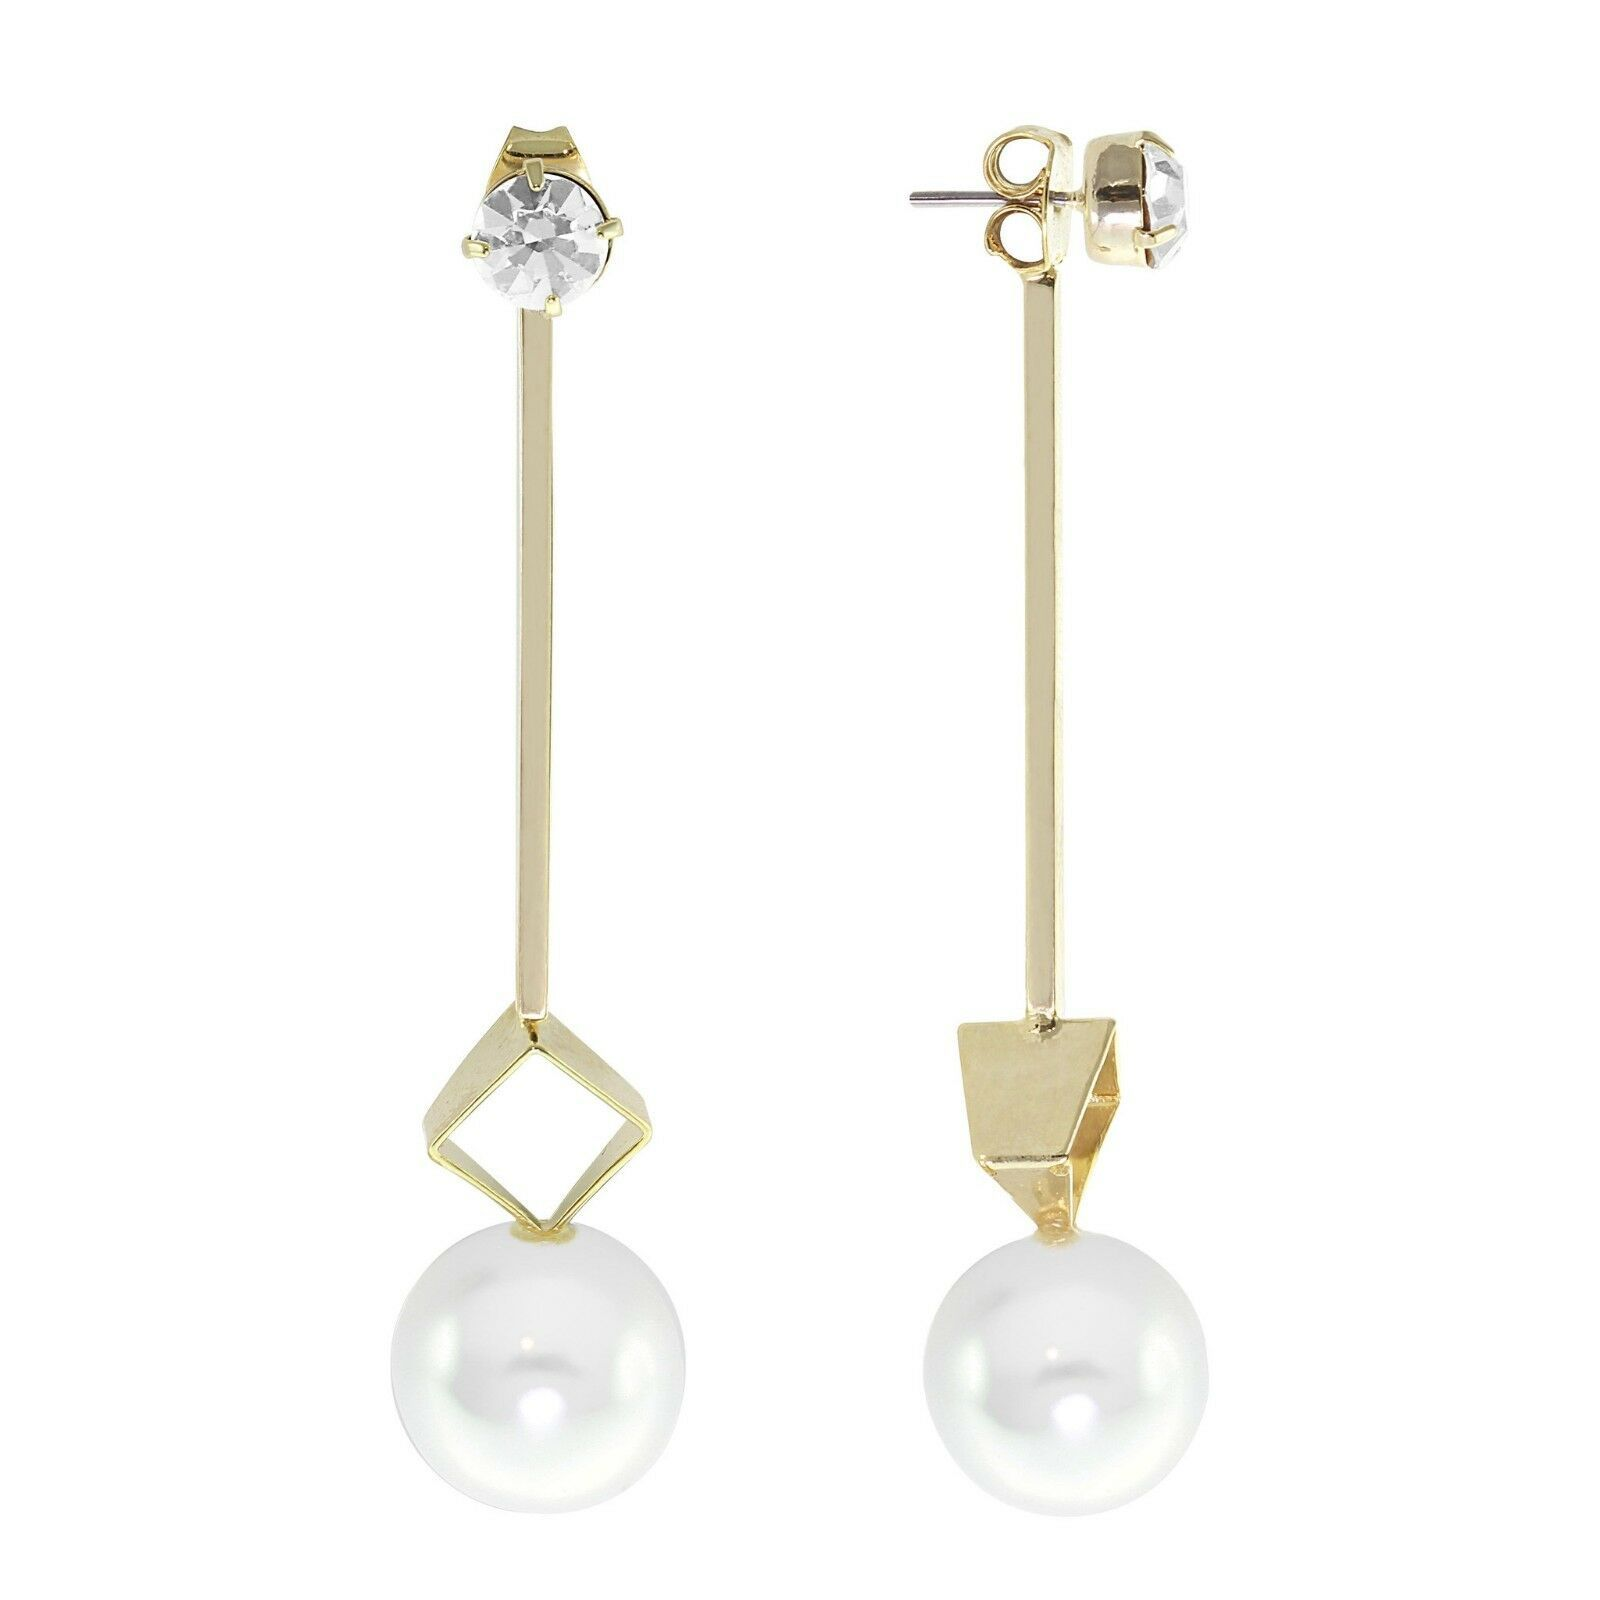 Daniela Swaebe 18K Gold-Plated What A Stud Linear Drop Glass Pearl Earrings NWT